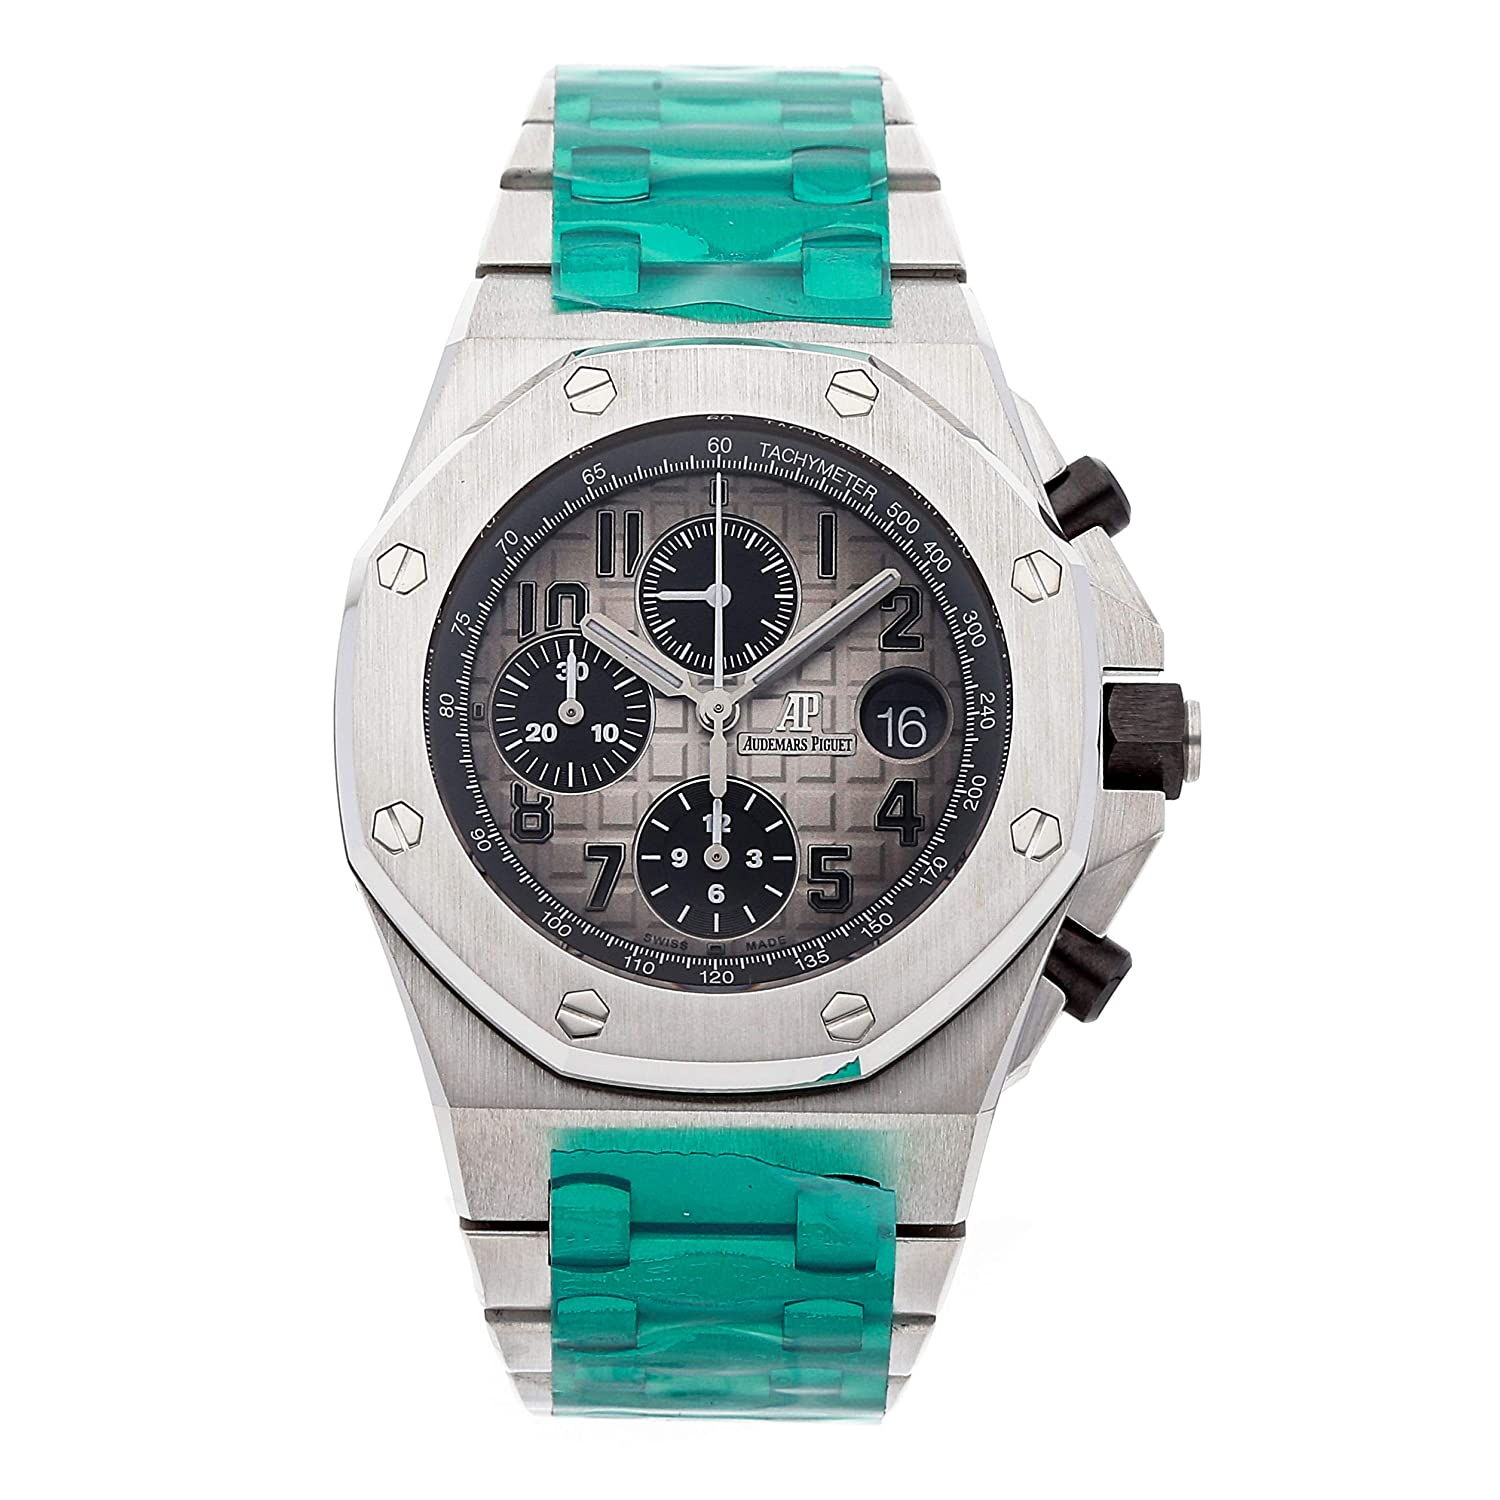 Audemars Piguet Royal Oak Offshore Mechanical (Automatic) Grey Dial Mens Watch 26470PT.OO.1000PT.01 (Certified Pre-Owned)